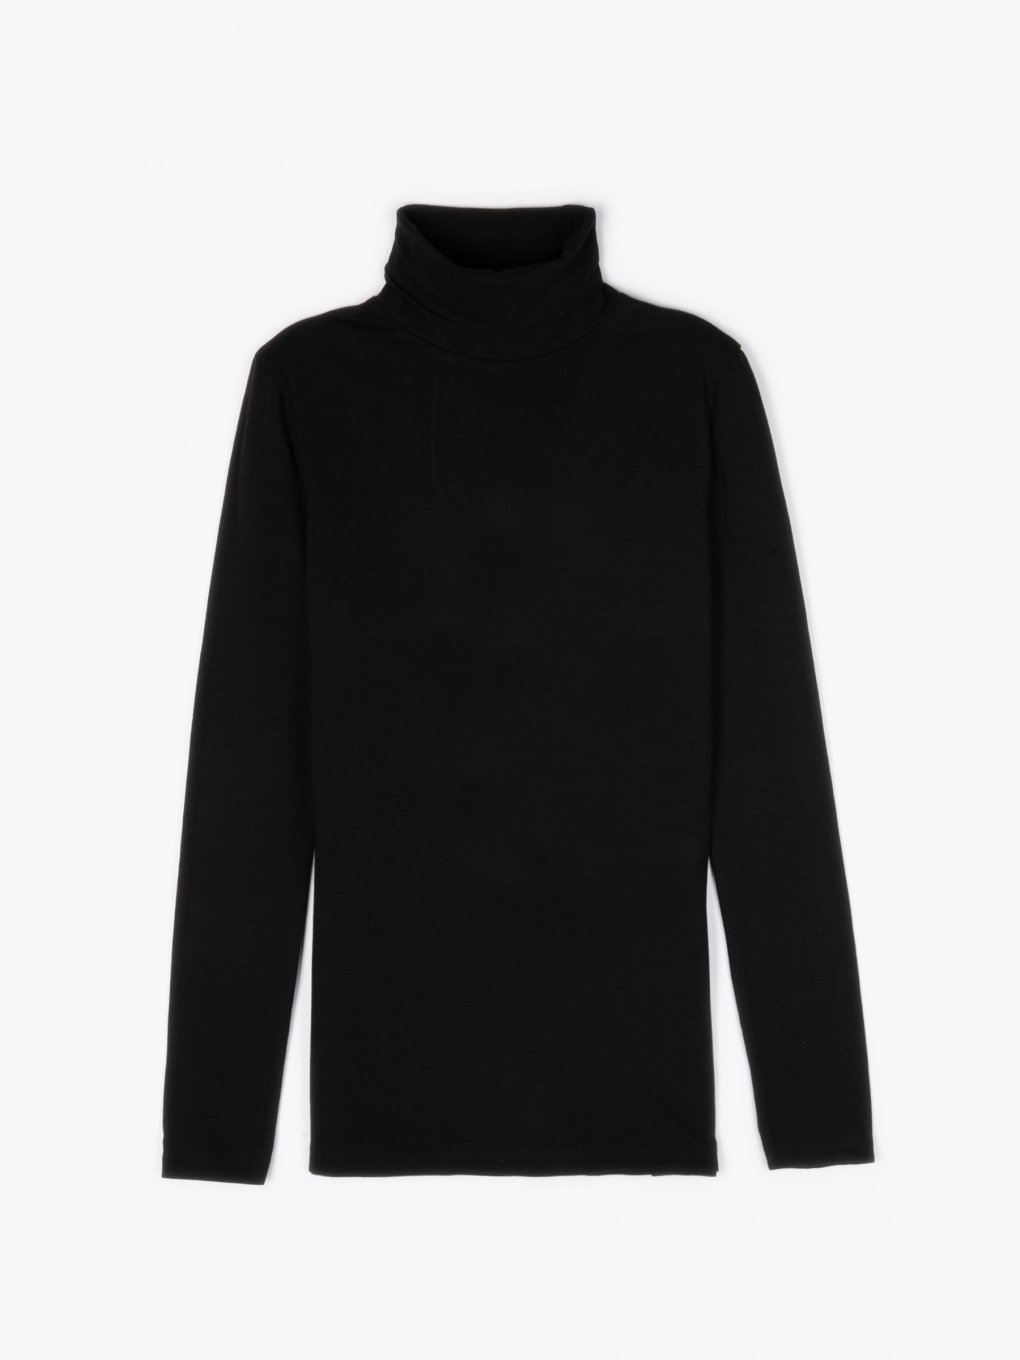 Basic cotton turtleneck t-shirt